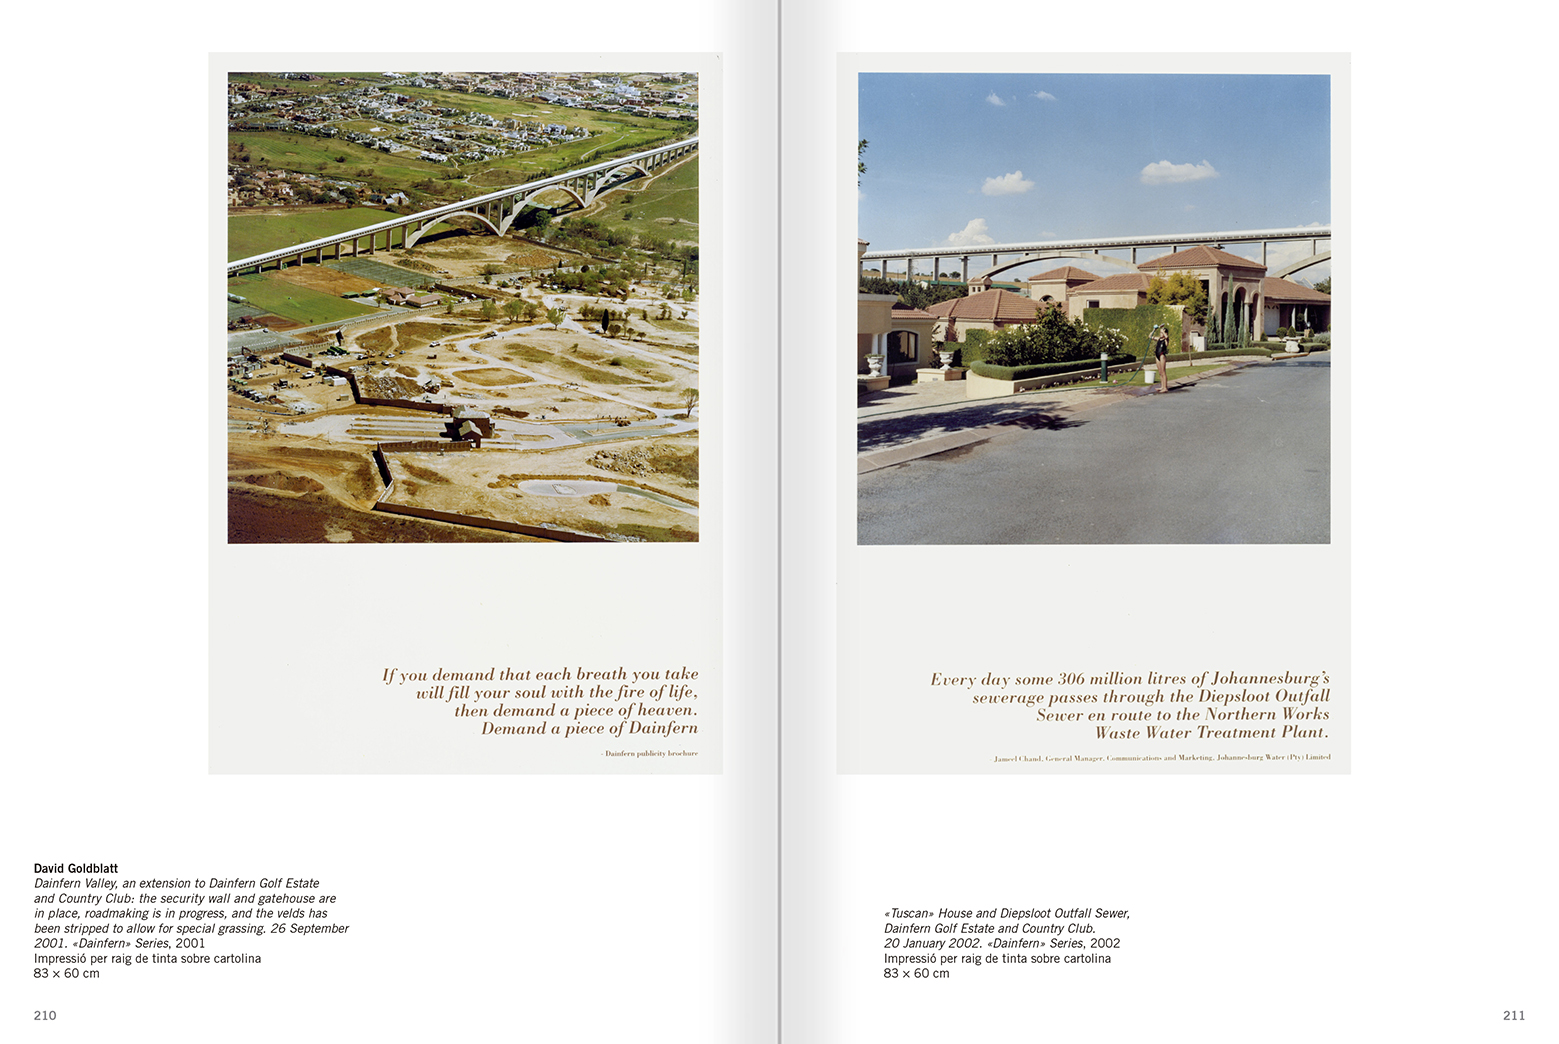 Selection from the catalogue 'Relational Objects. MACBA Collection 2002-07', pages 210 and 211